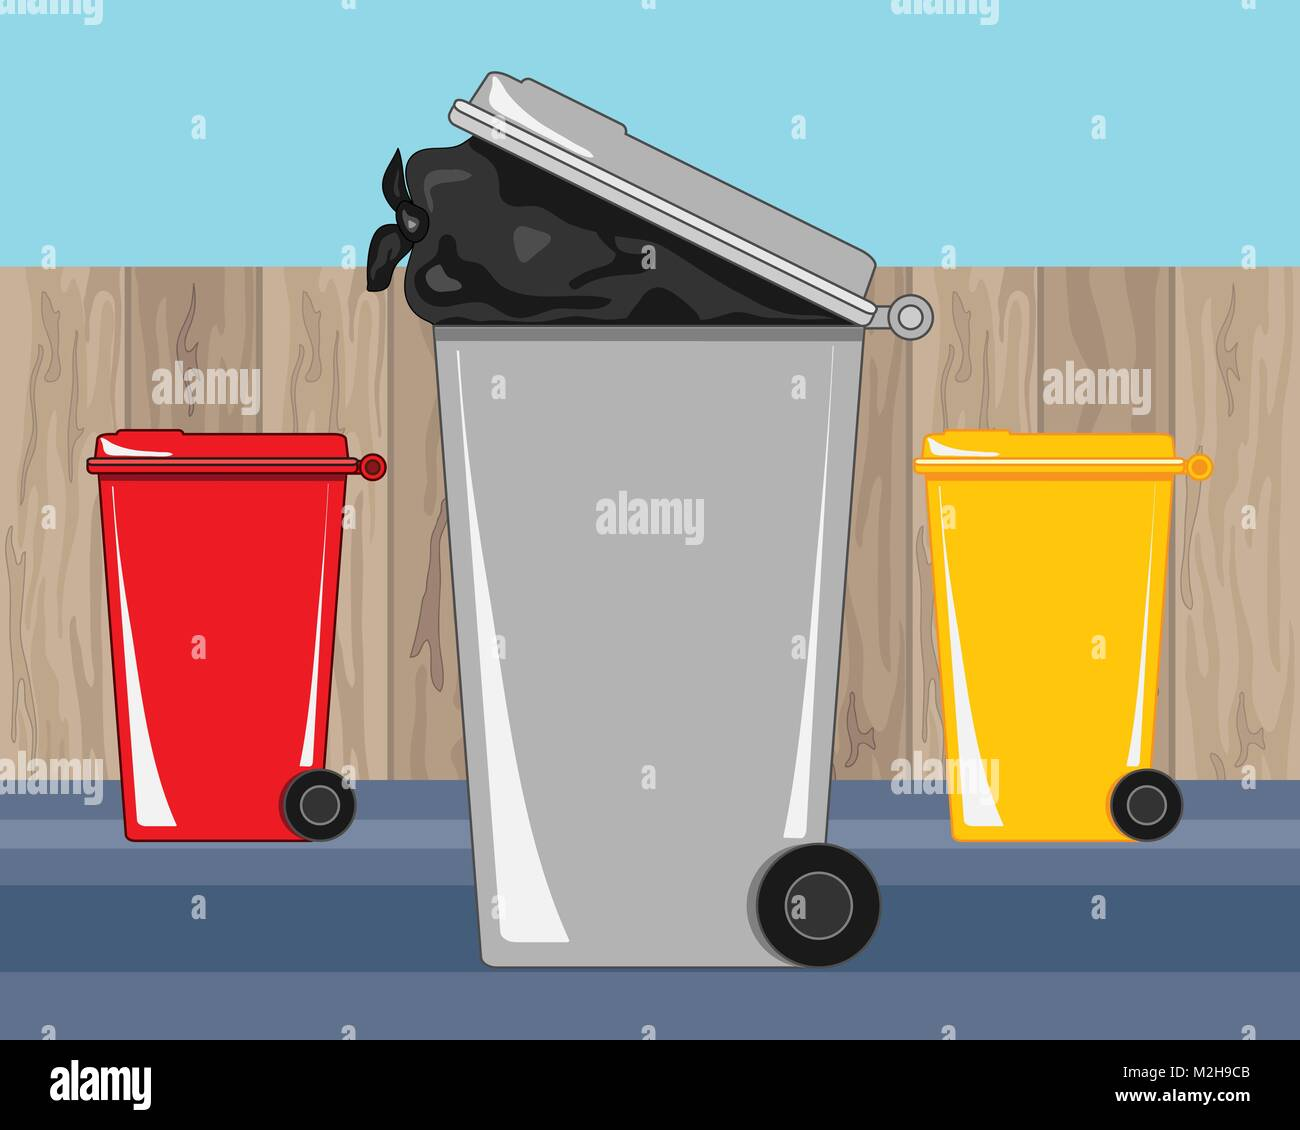 a vector illustration in eps format of waste and recycling bins in a back yard with a wooden fence and a blue sky - Stock Vector